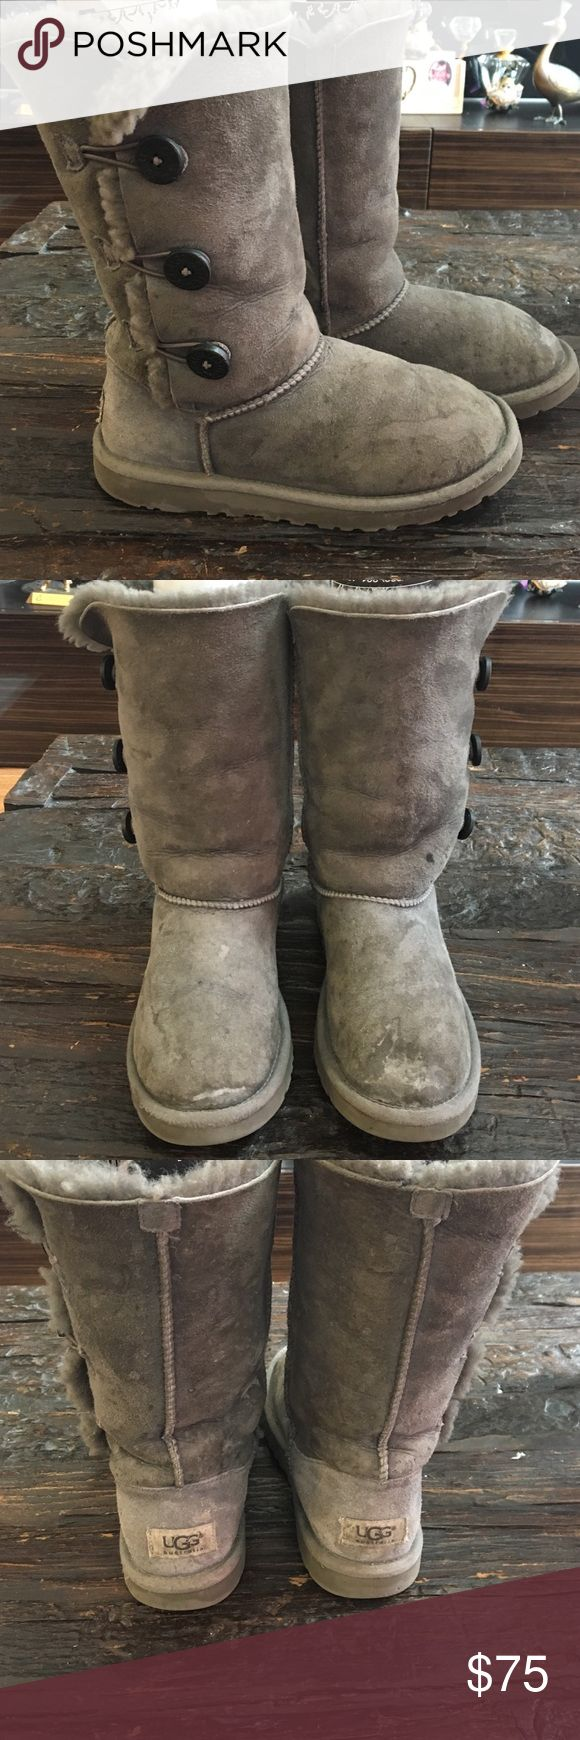 UGG Tall Grey Boots Authentic UGG Tall Grey Boots Authentic dark grey bottoms on side, pure warmth, comfort, and style all grey UGG Boots!  no tears or rips! Will look at all offers but through the offer button only Thanks UGG Shoes Winter & Rain Boots